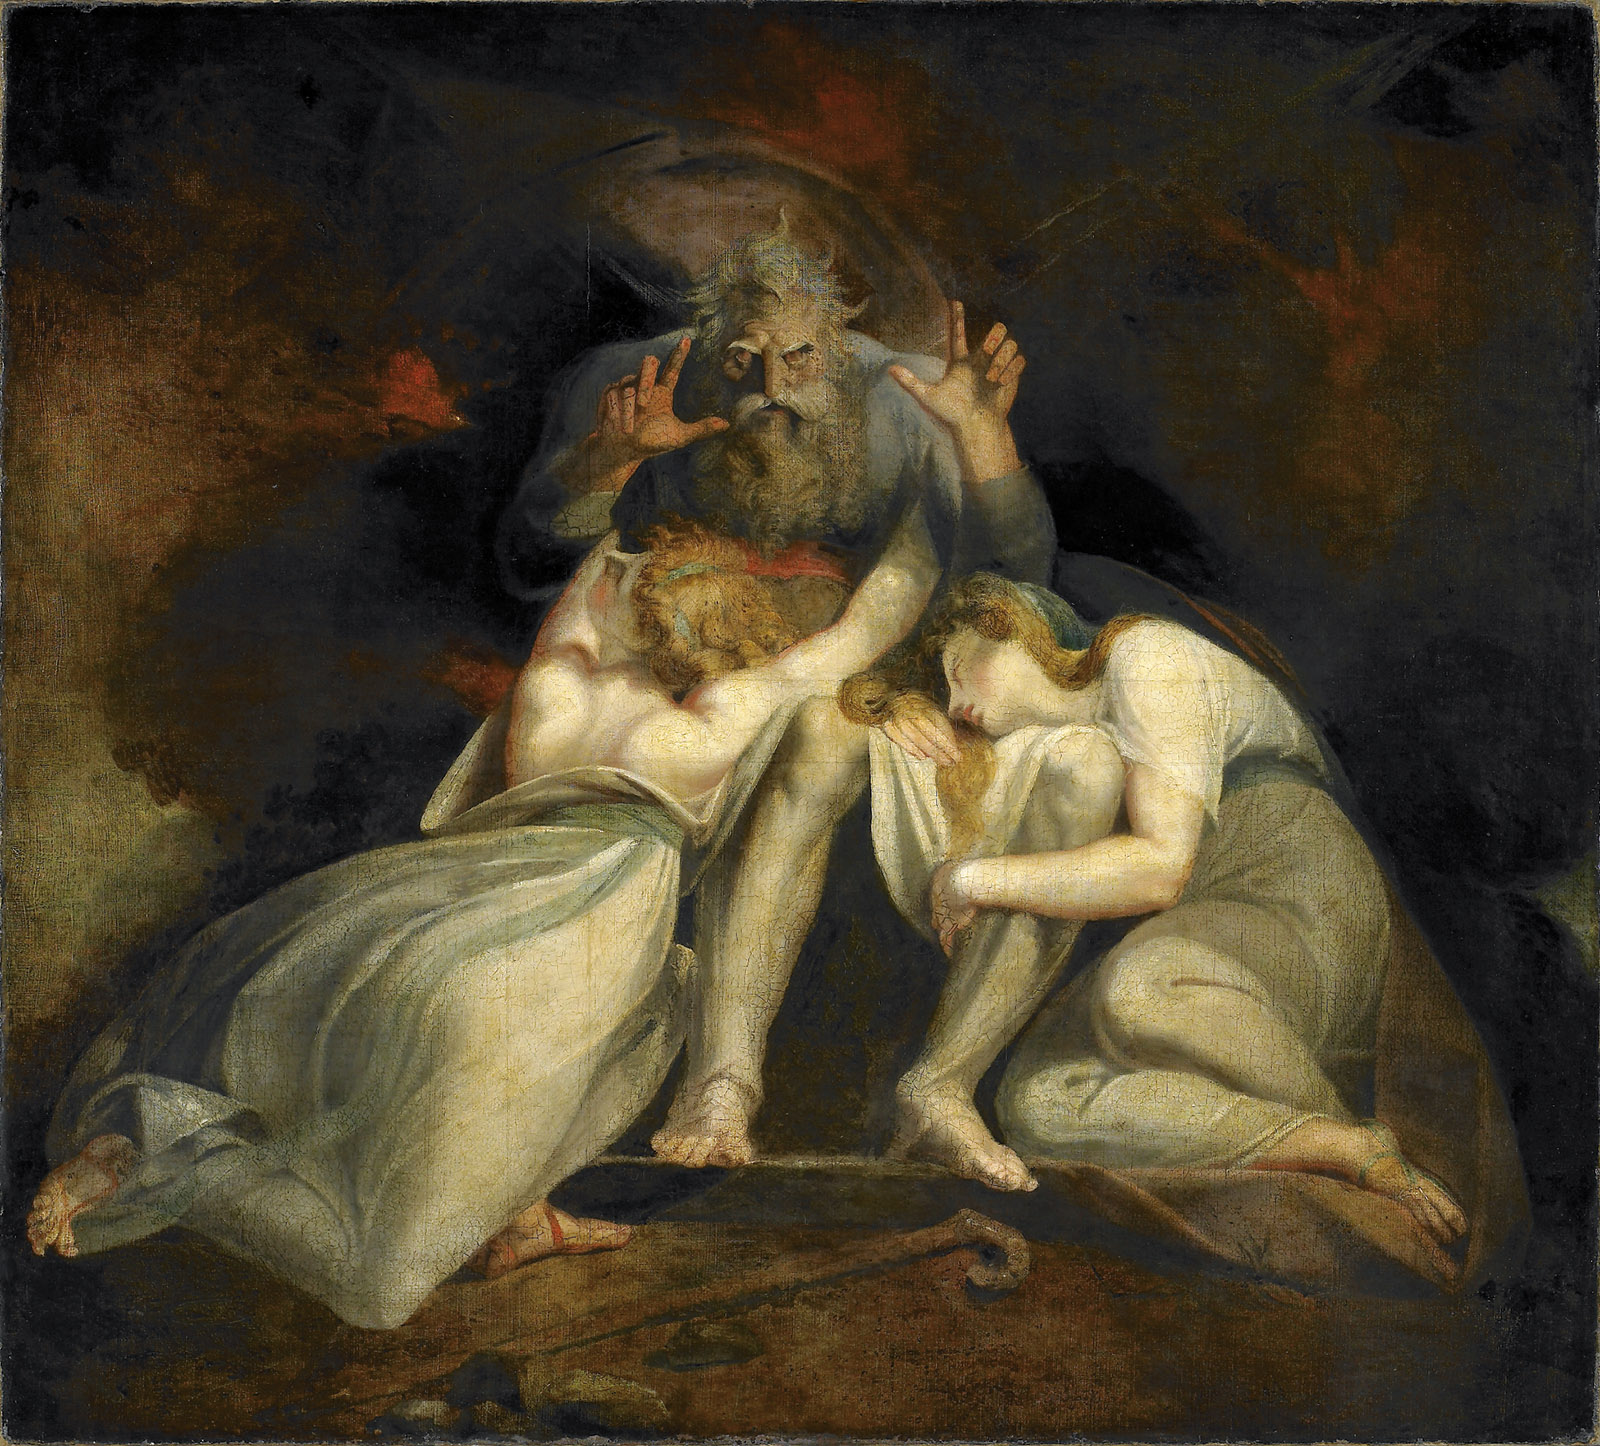 The Death of Oedipus, painting by Henry Fuseli